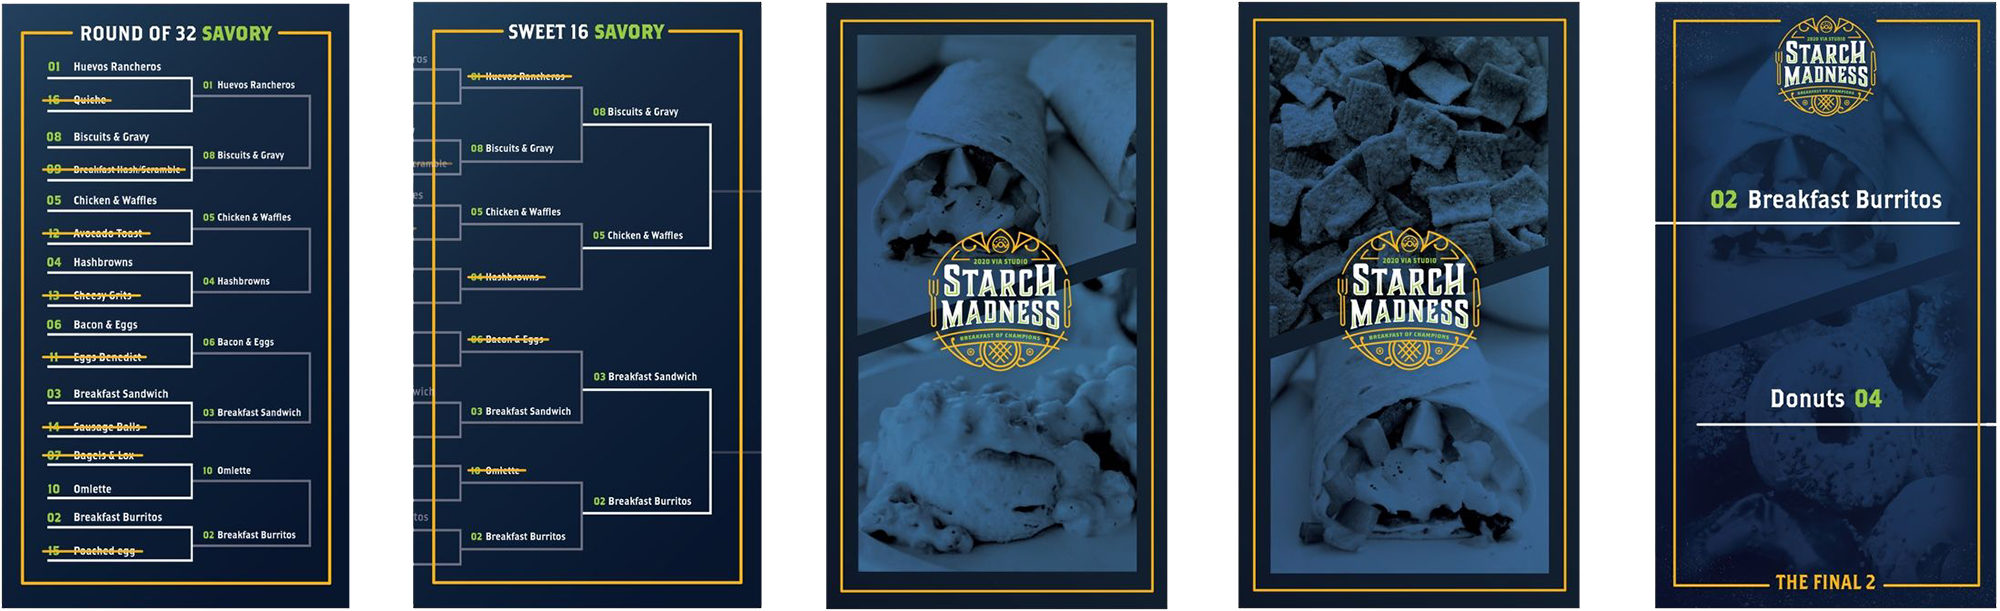 Starch_Madness_4.png